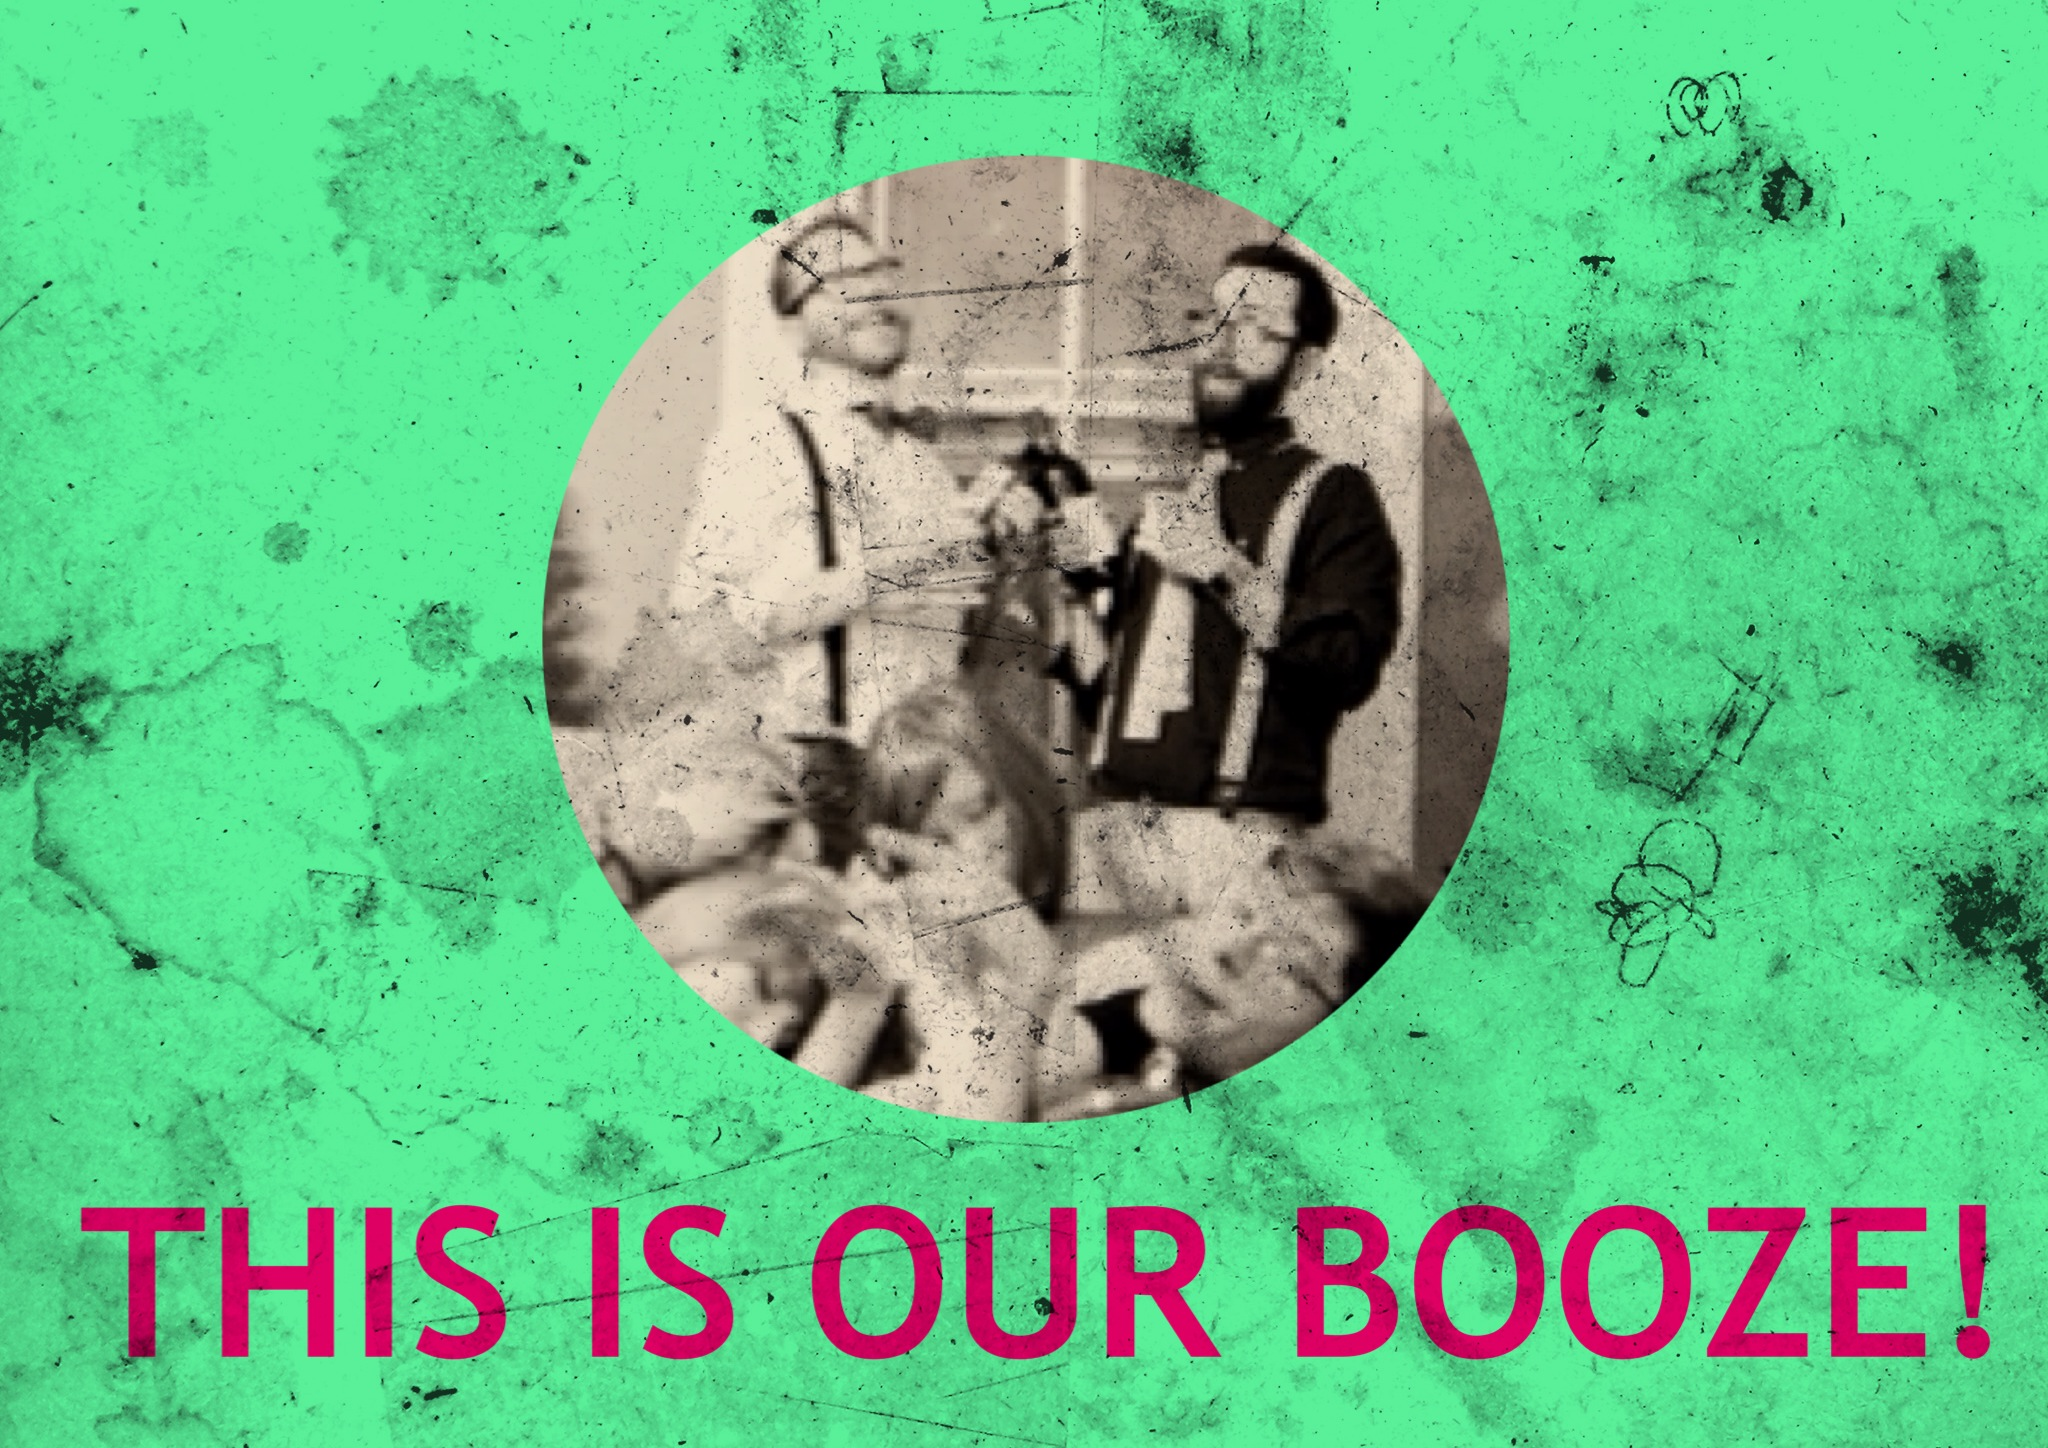 05 - This Is Our Booze!.jpg